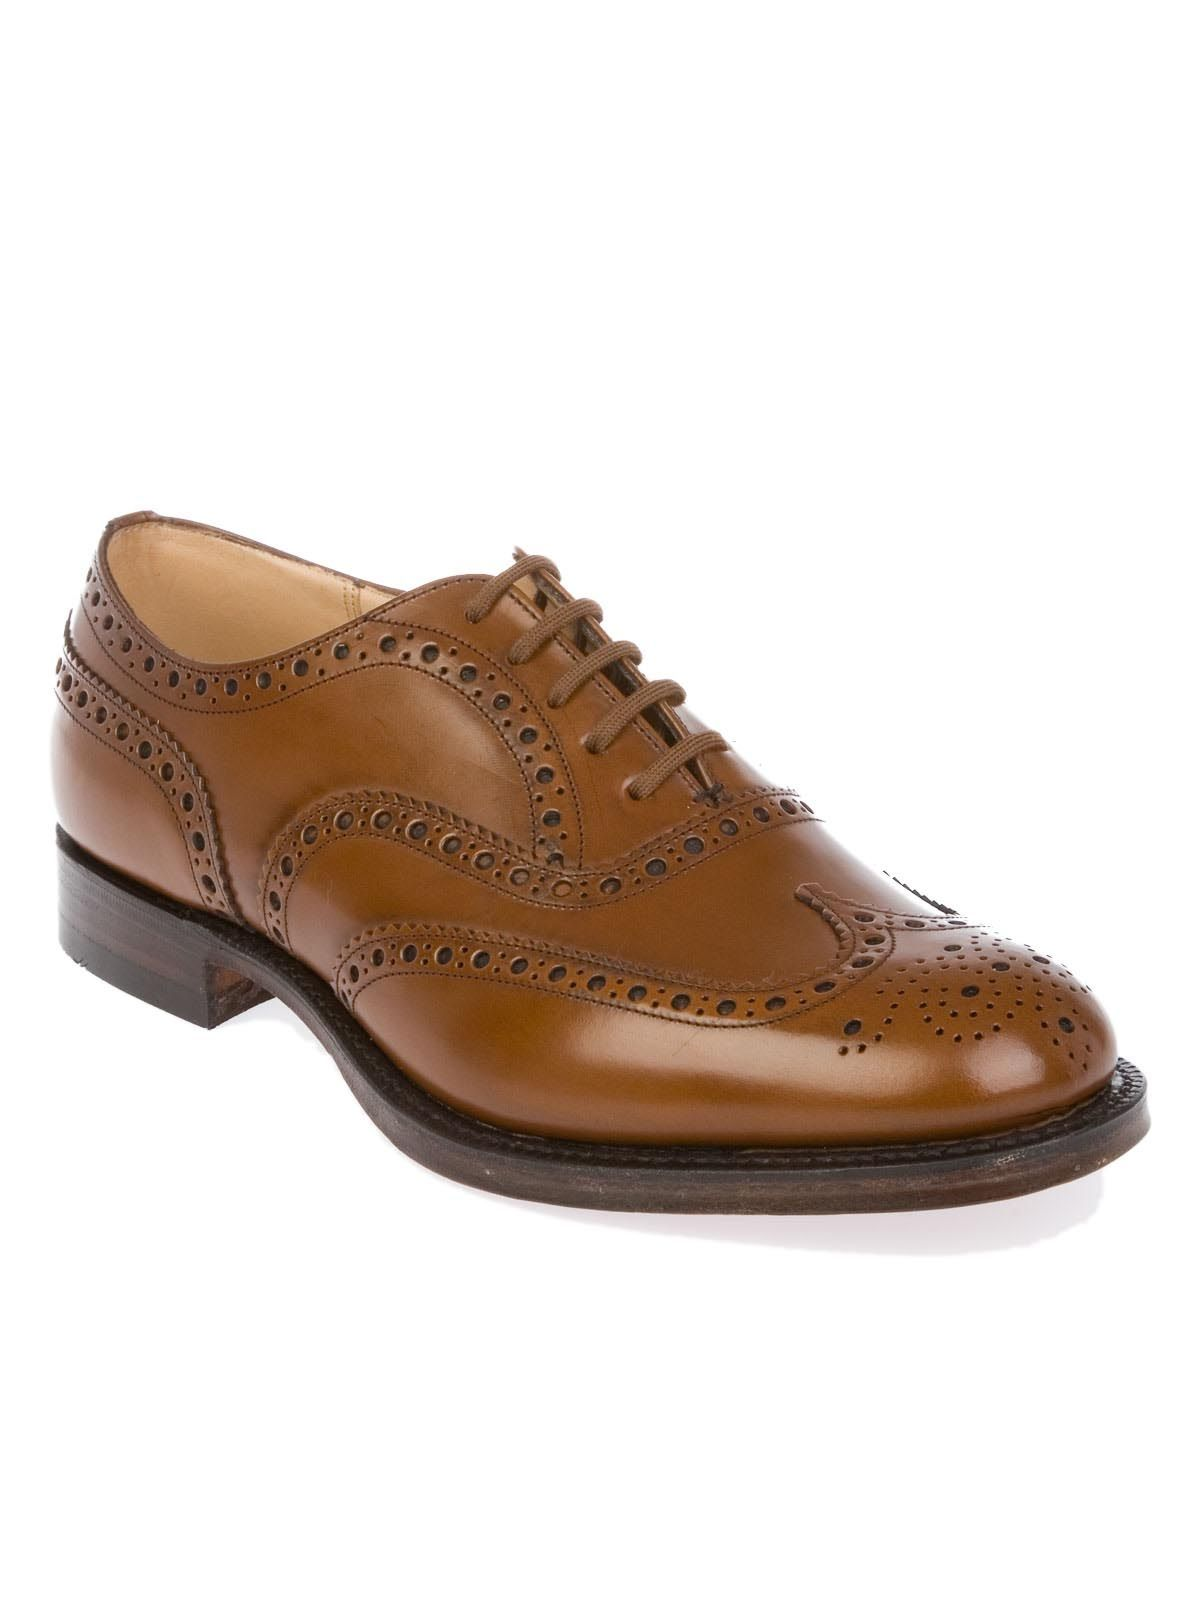 CHURCH'S MEN'S BURWOODSANDALWOOD BROWN LEATHER LACE-UP SHOES